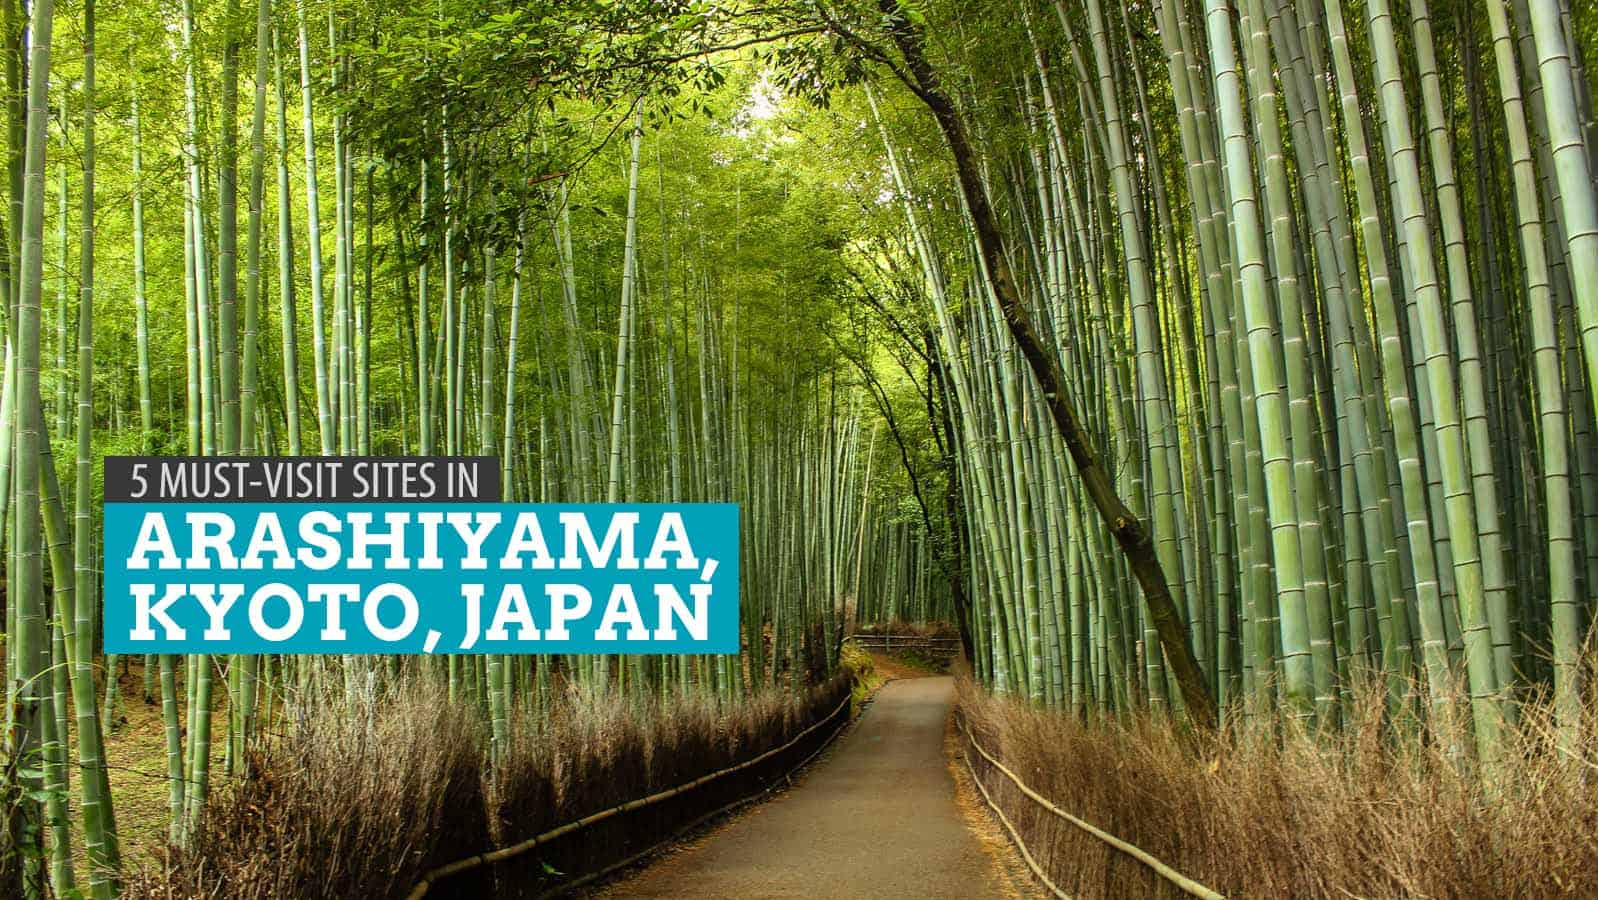 ARASHIYAMA, KYOTO: A DIY Walking Tour